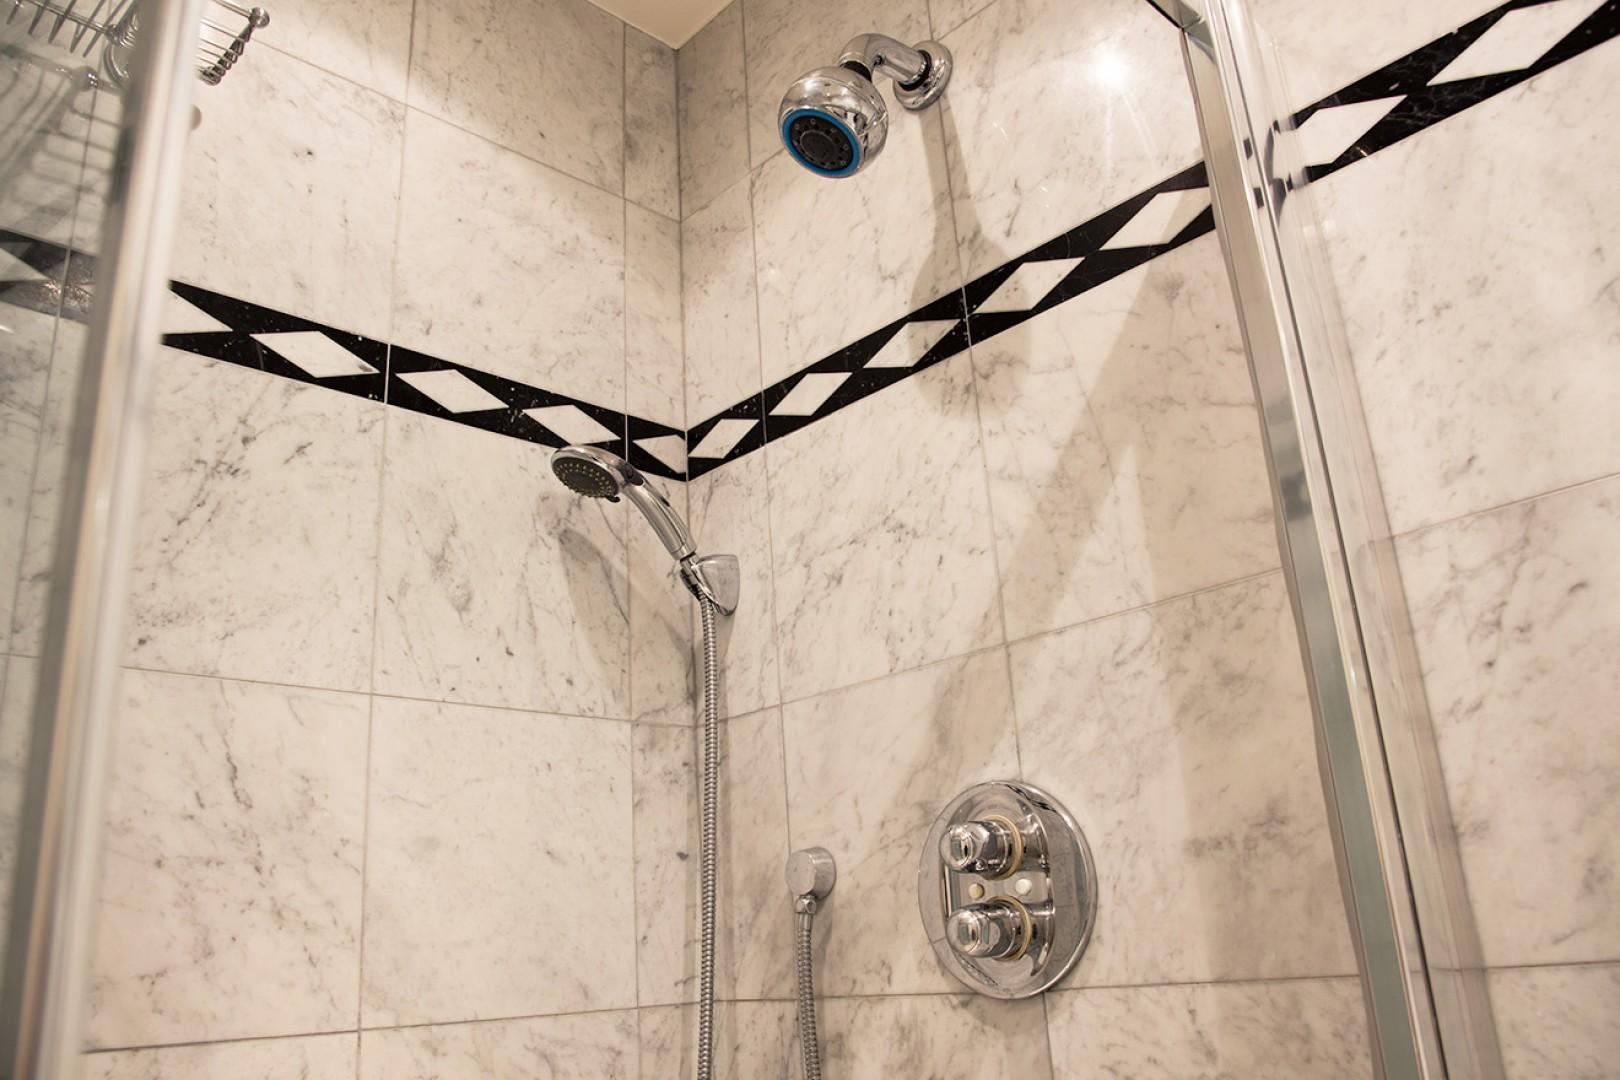 The large shower in bathroom 1 features both fixed and flexible shower heads.